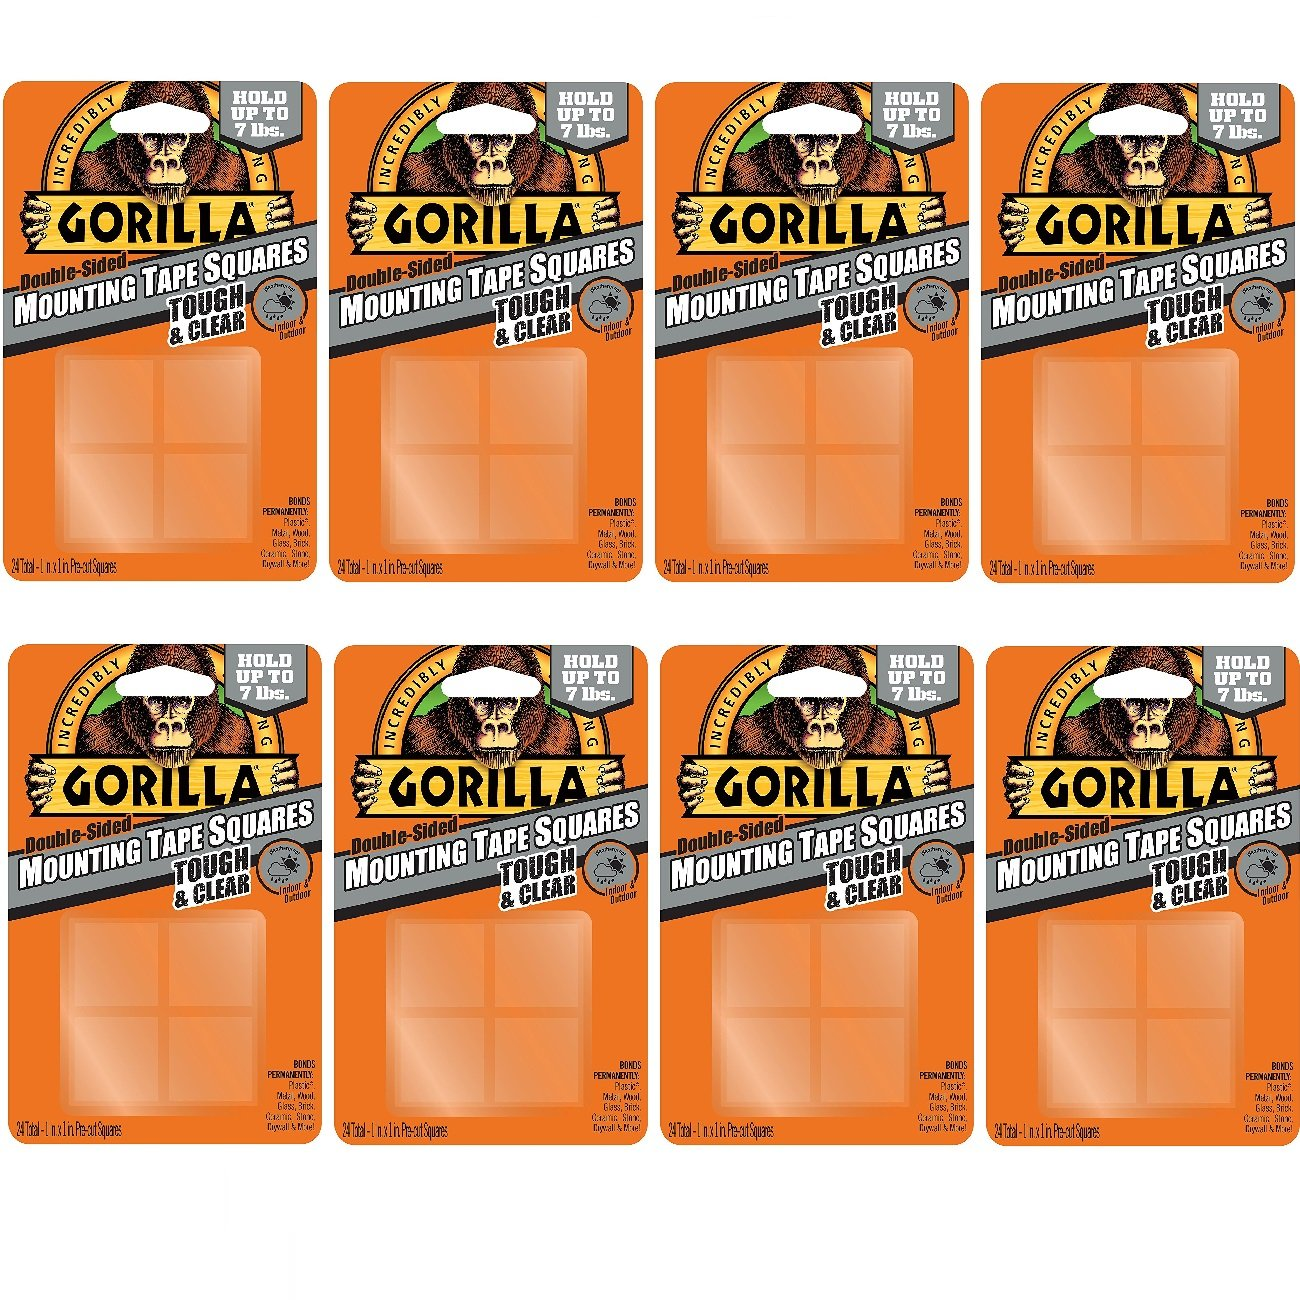 Gorilla 6067201 Mounting Tape Squares, Tough & Clear (8 Pack) by Gorilla